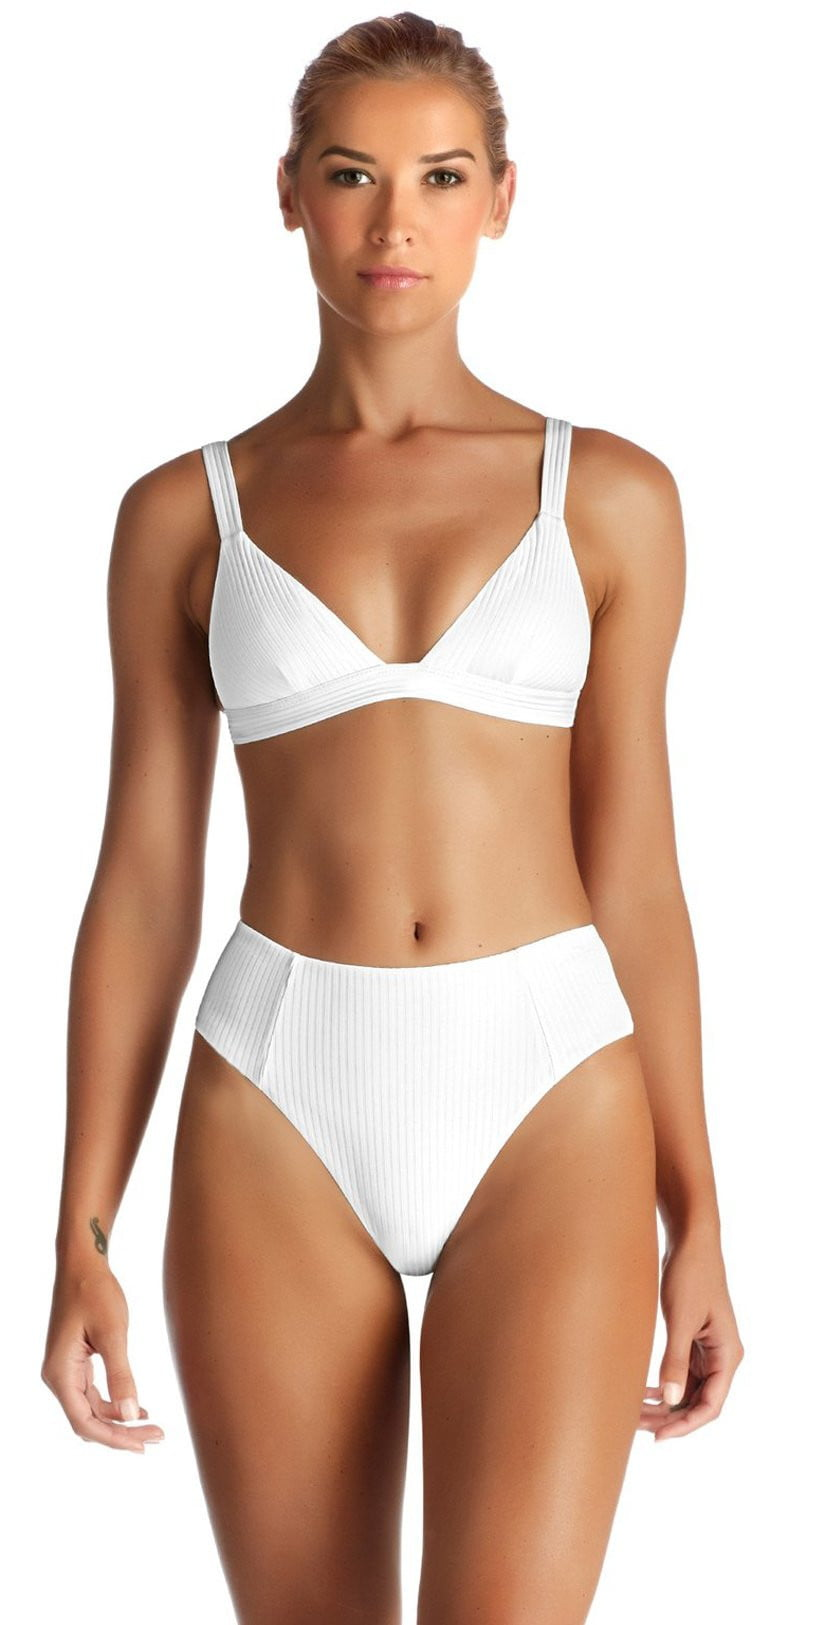 Vitamin A Neutra EcoRib Triangle Bikini Top in White 805T ERW front studio model